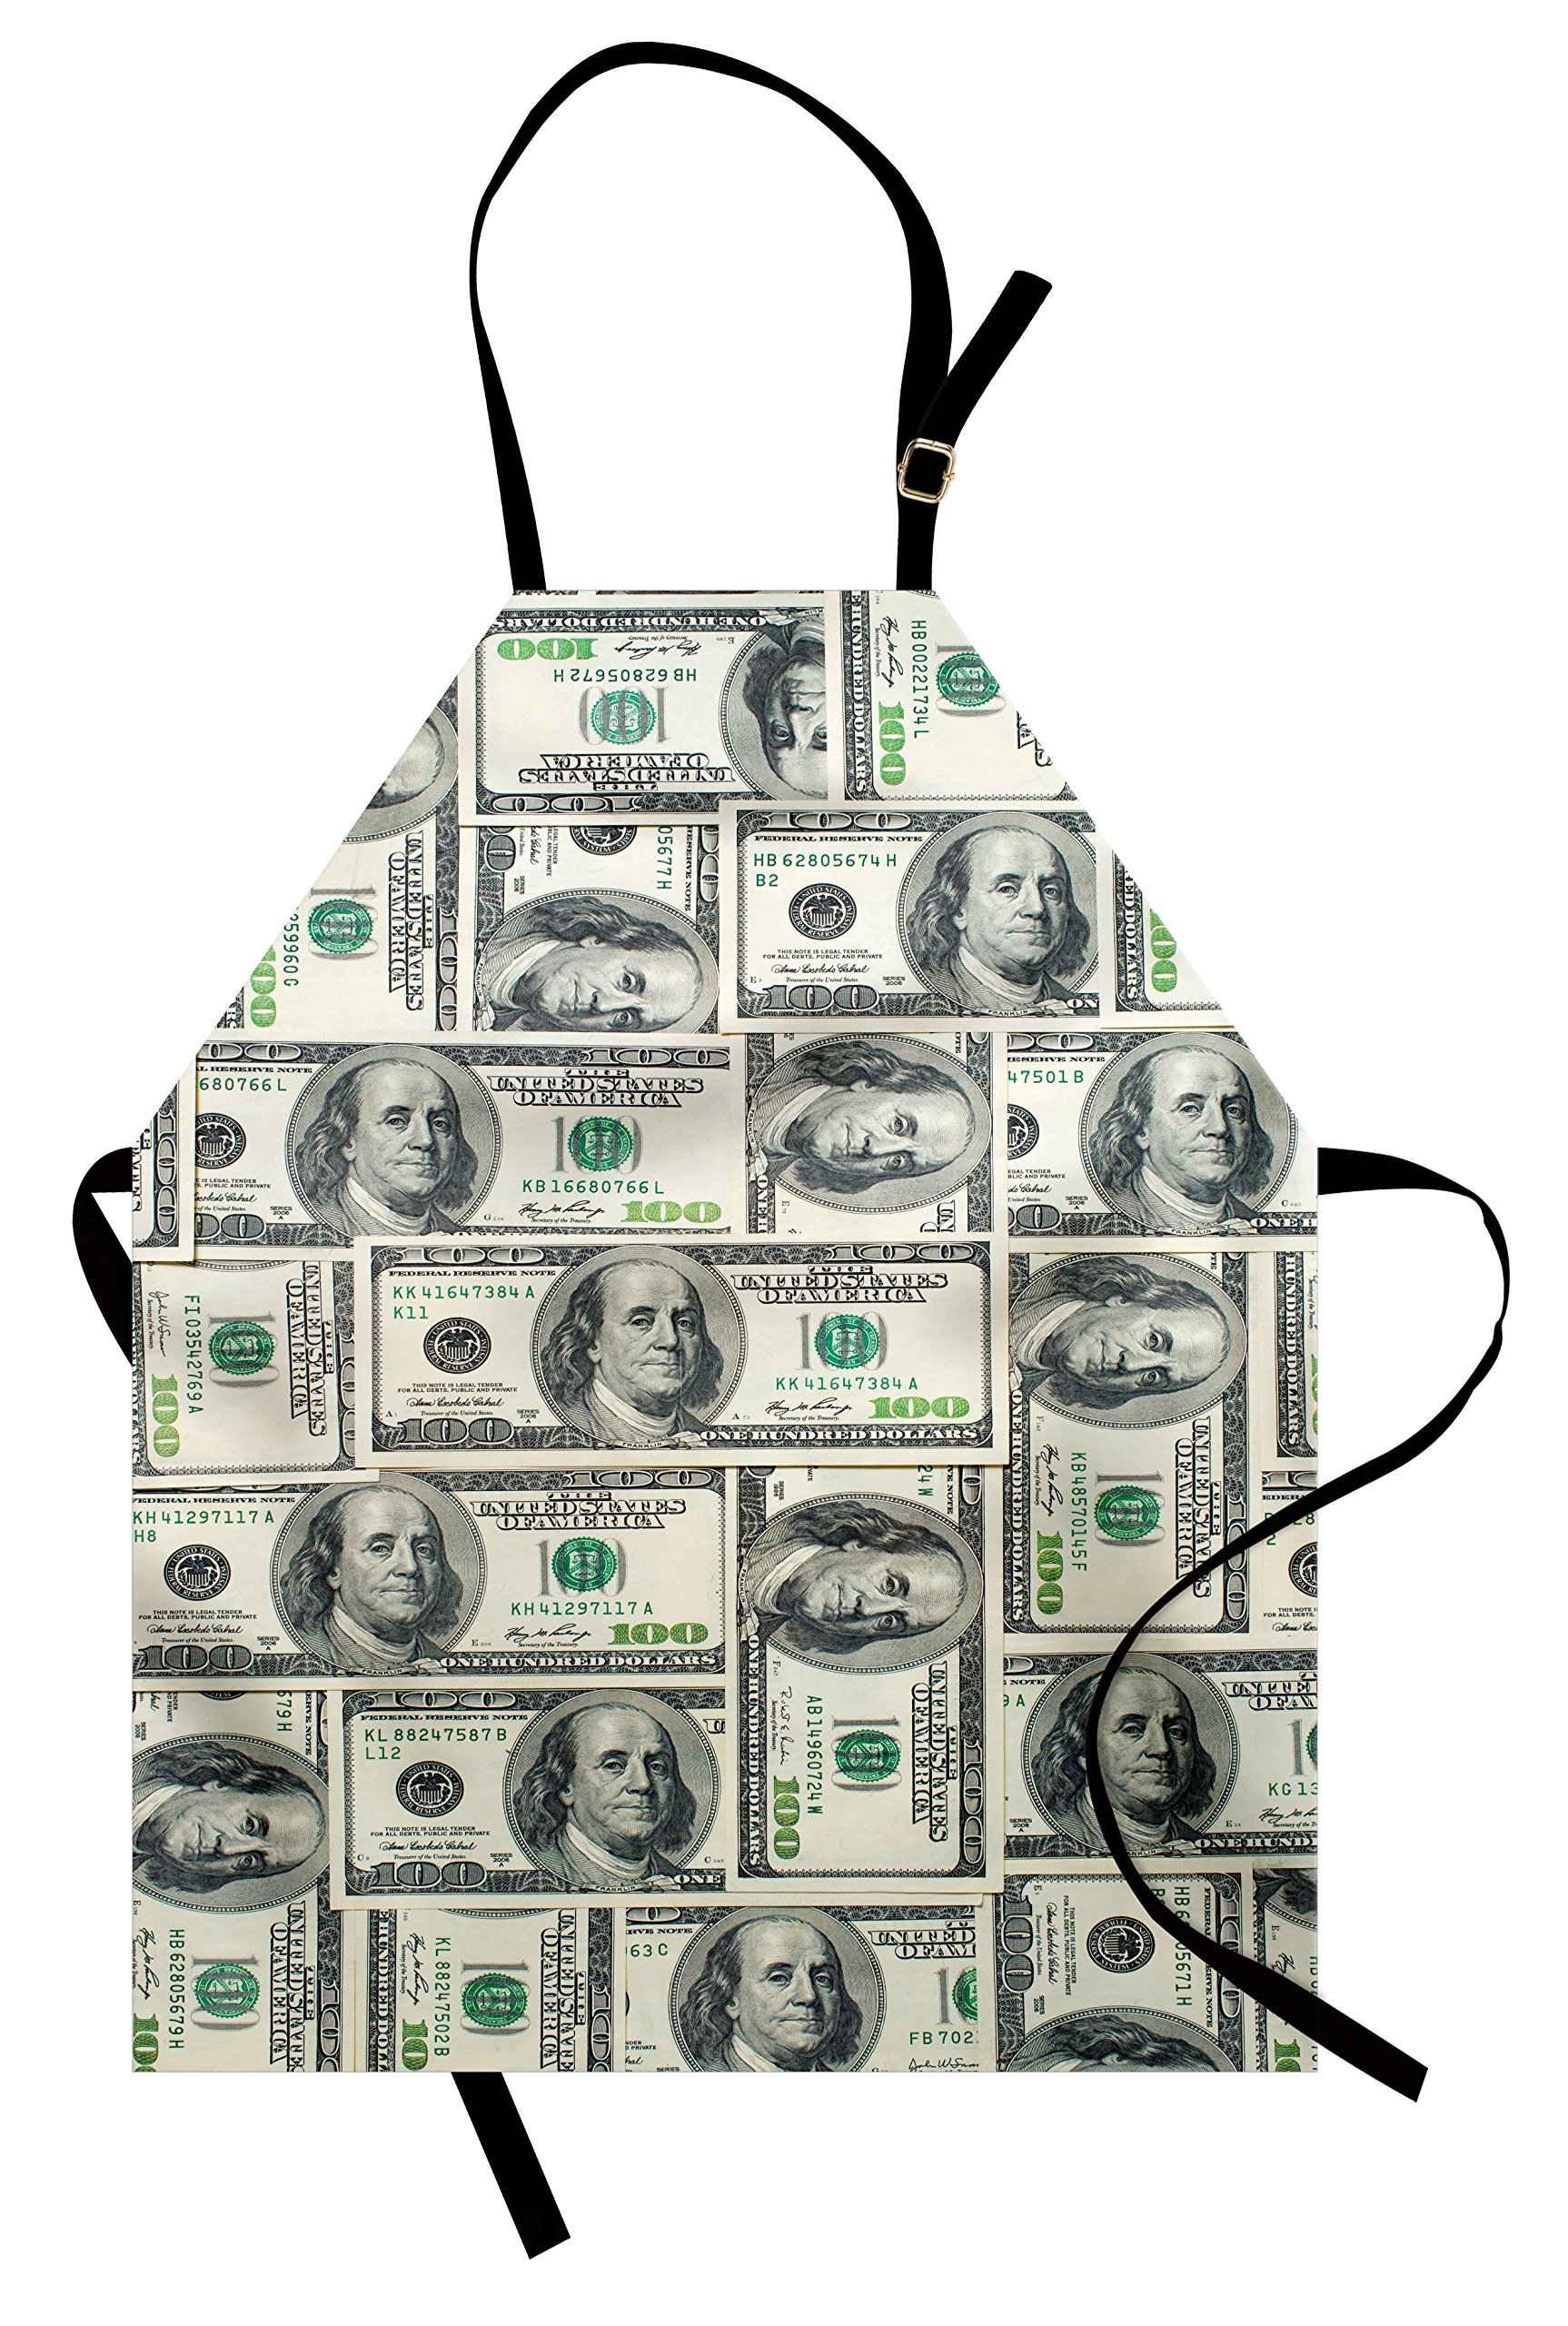 Ambesonne Money Apron, Dollar Bills of United States Federal Reserve with The Portrait of Ben Franklin, Unisex Kitchen Bib Apron with Adjustable Neck for Cooking Baking Gardening, Pale Green Grey